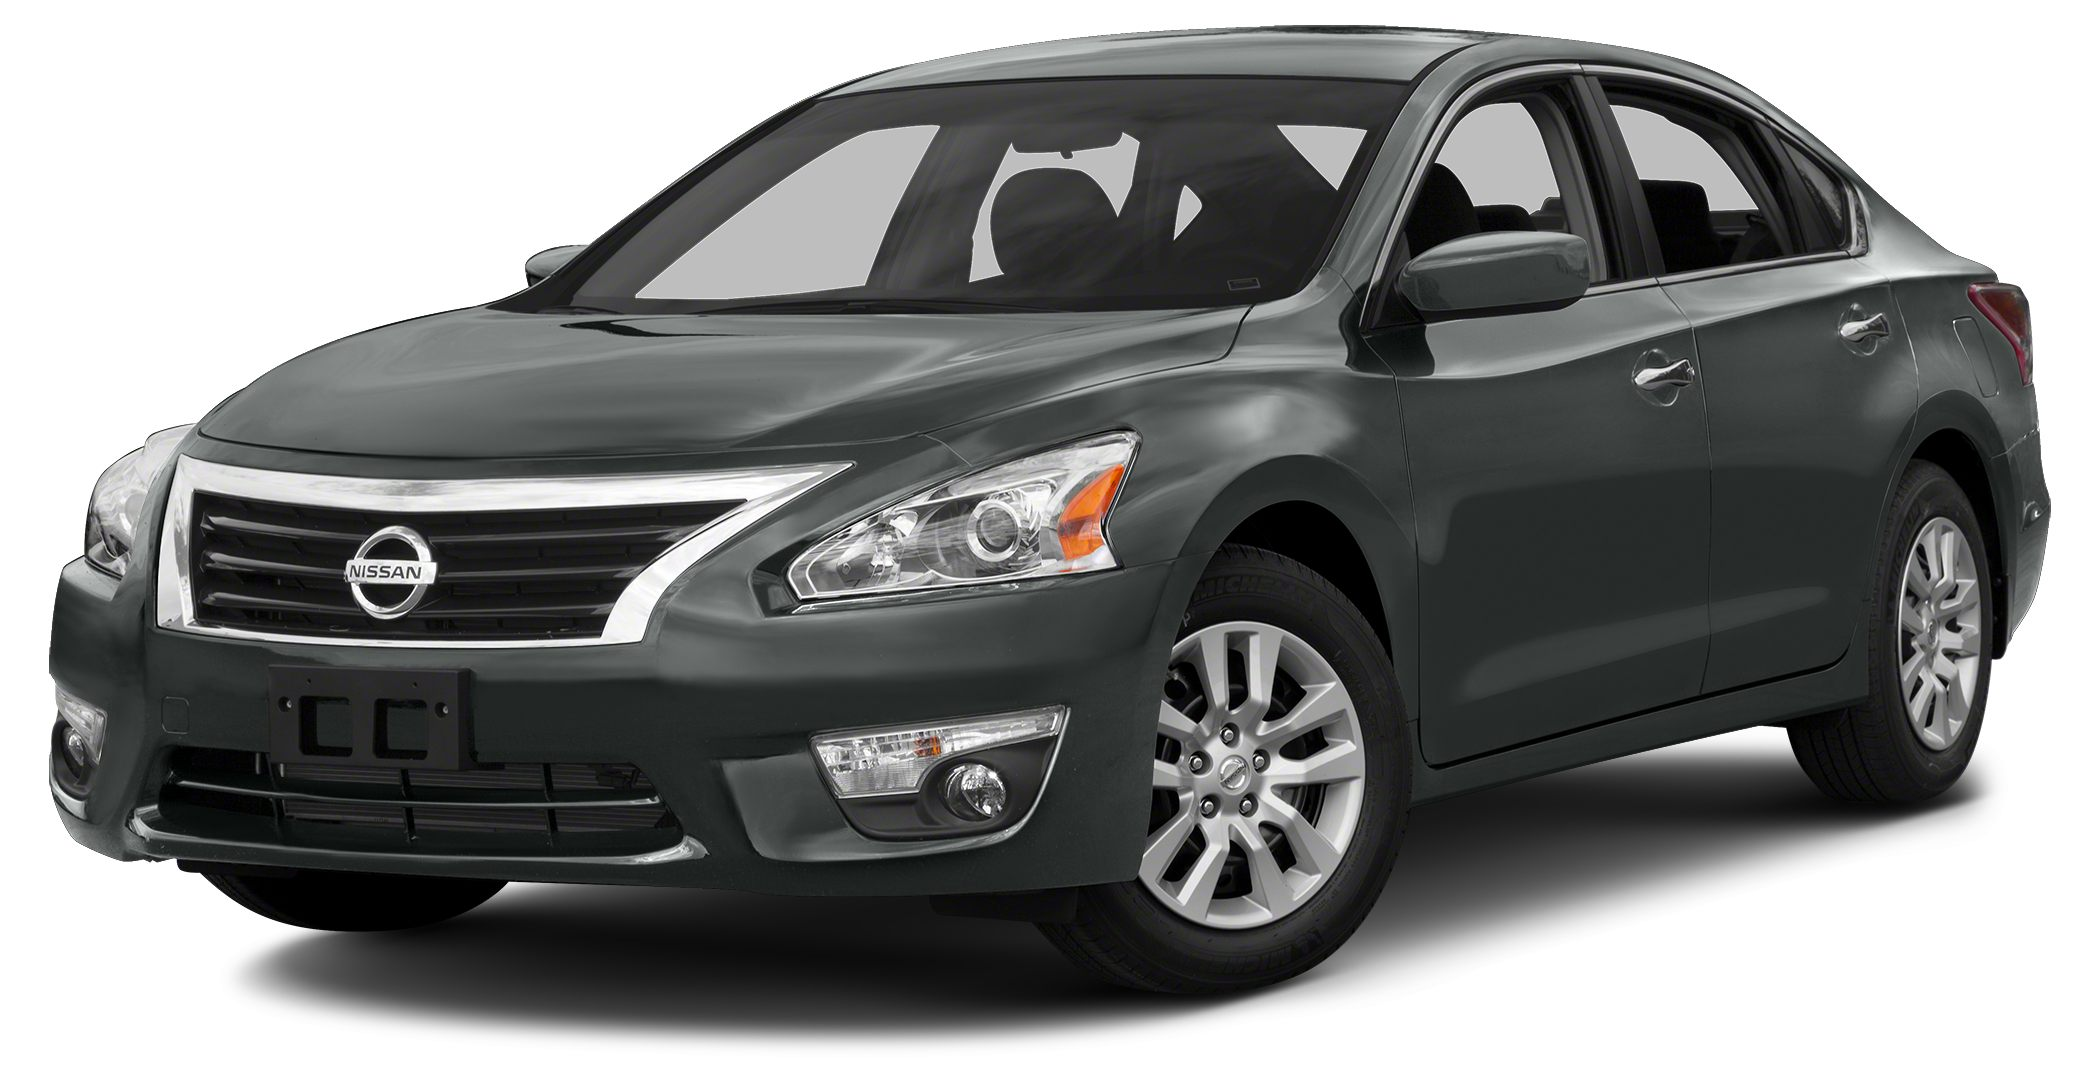 2015 Nissan Altima 25 S Delivers 38 Highway MPG and 27 City MPG Carfax One-Owner Vehicle This N